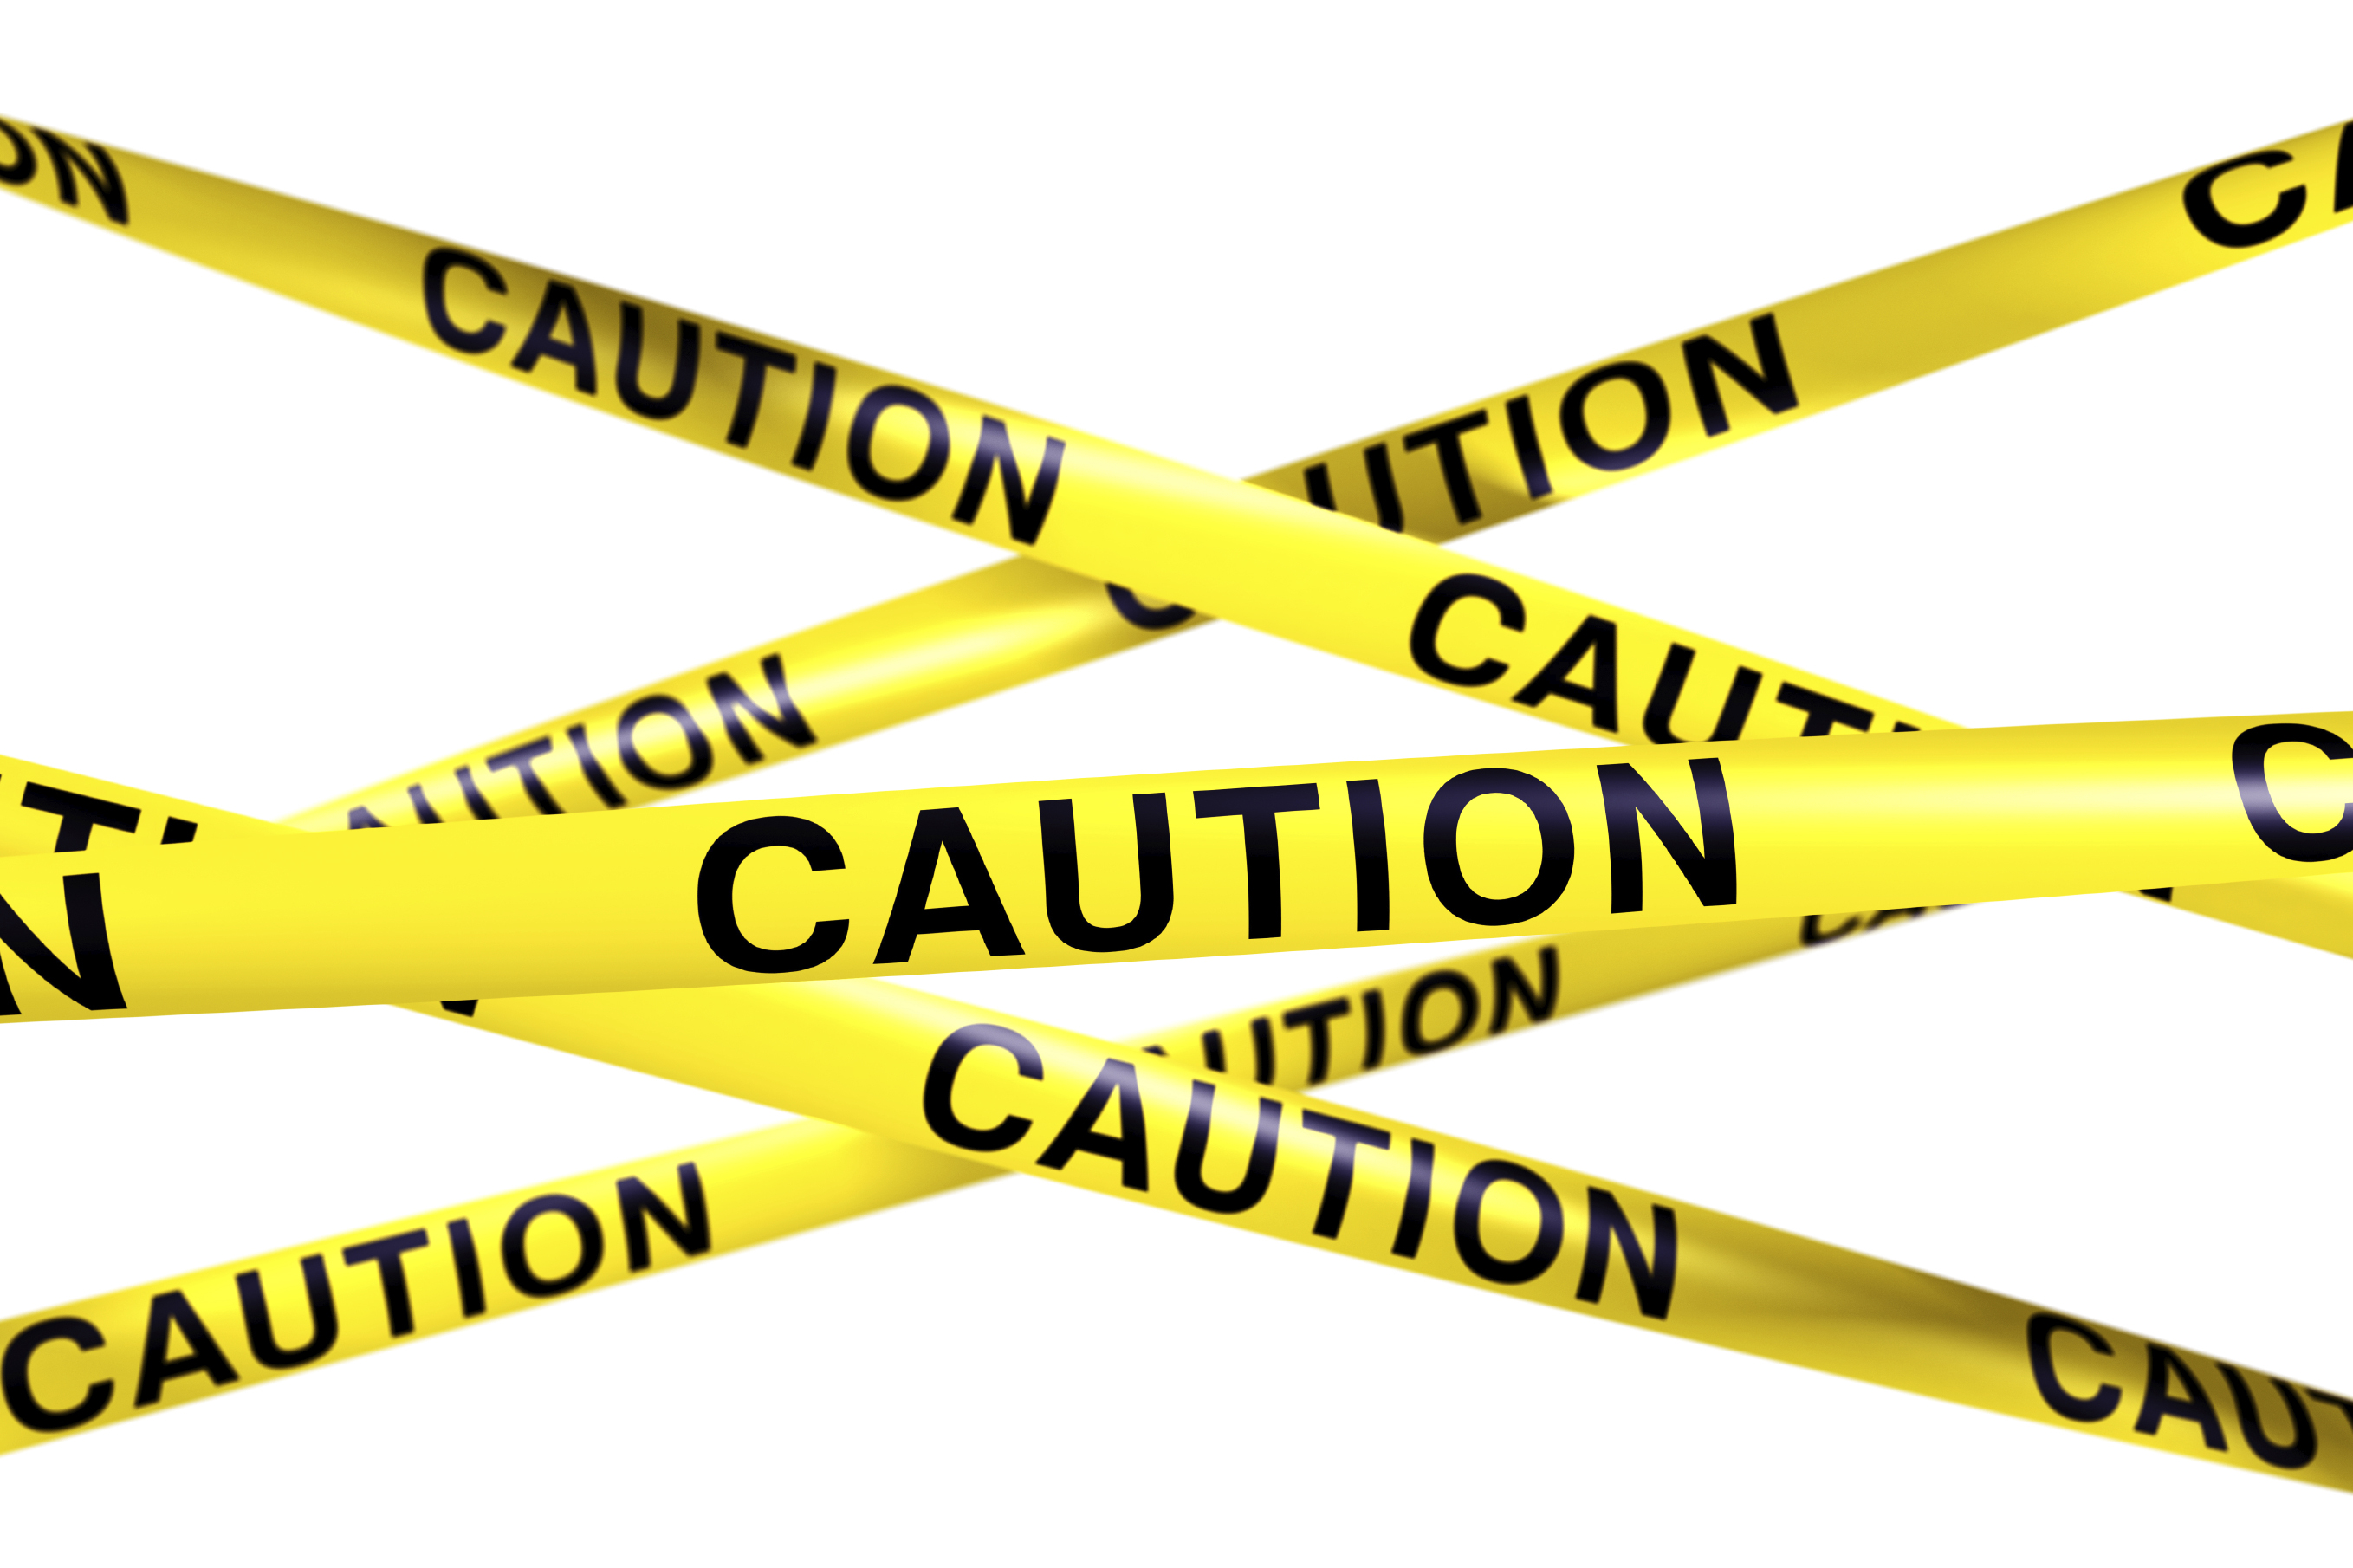 Caution clipart #1, Download drawings